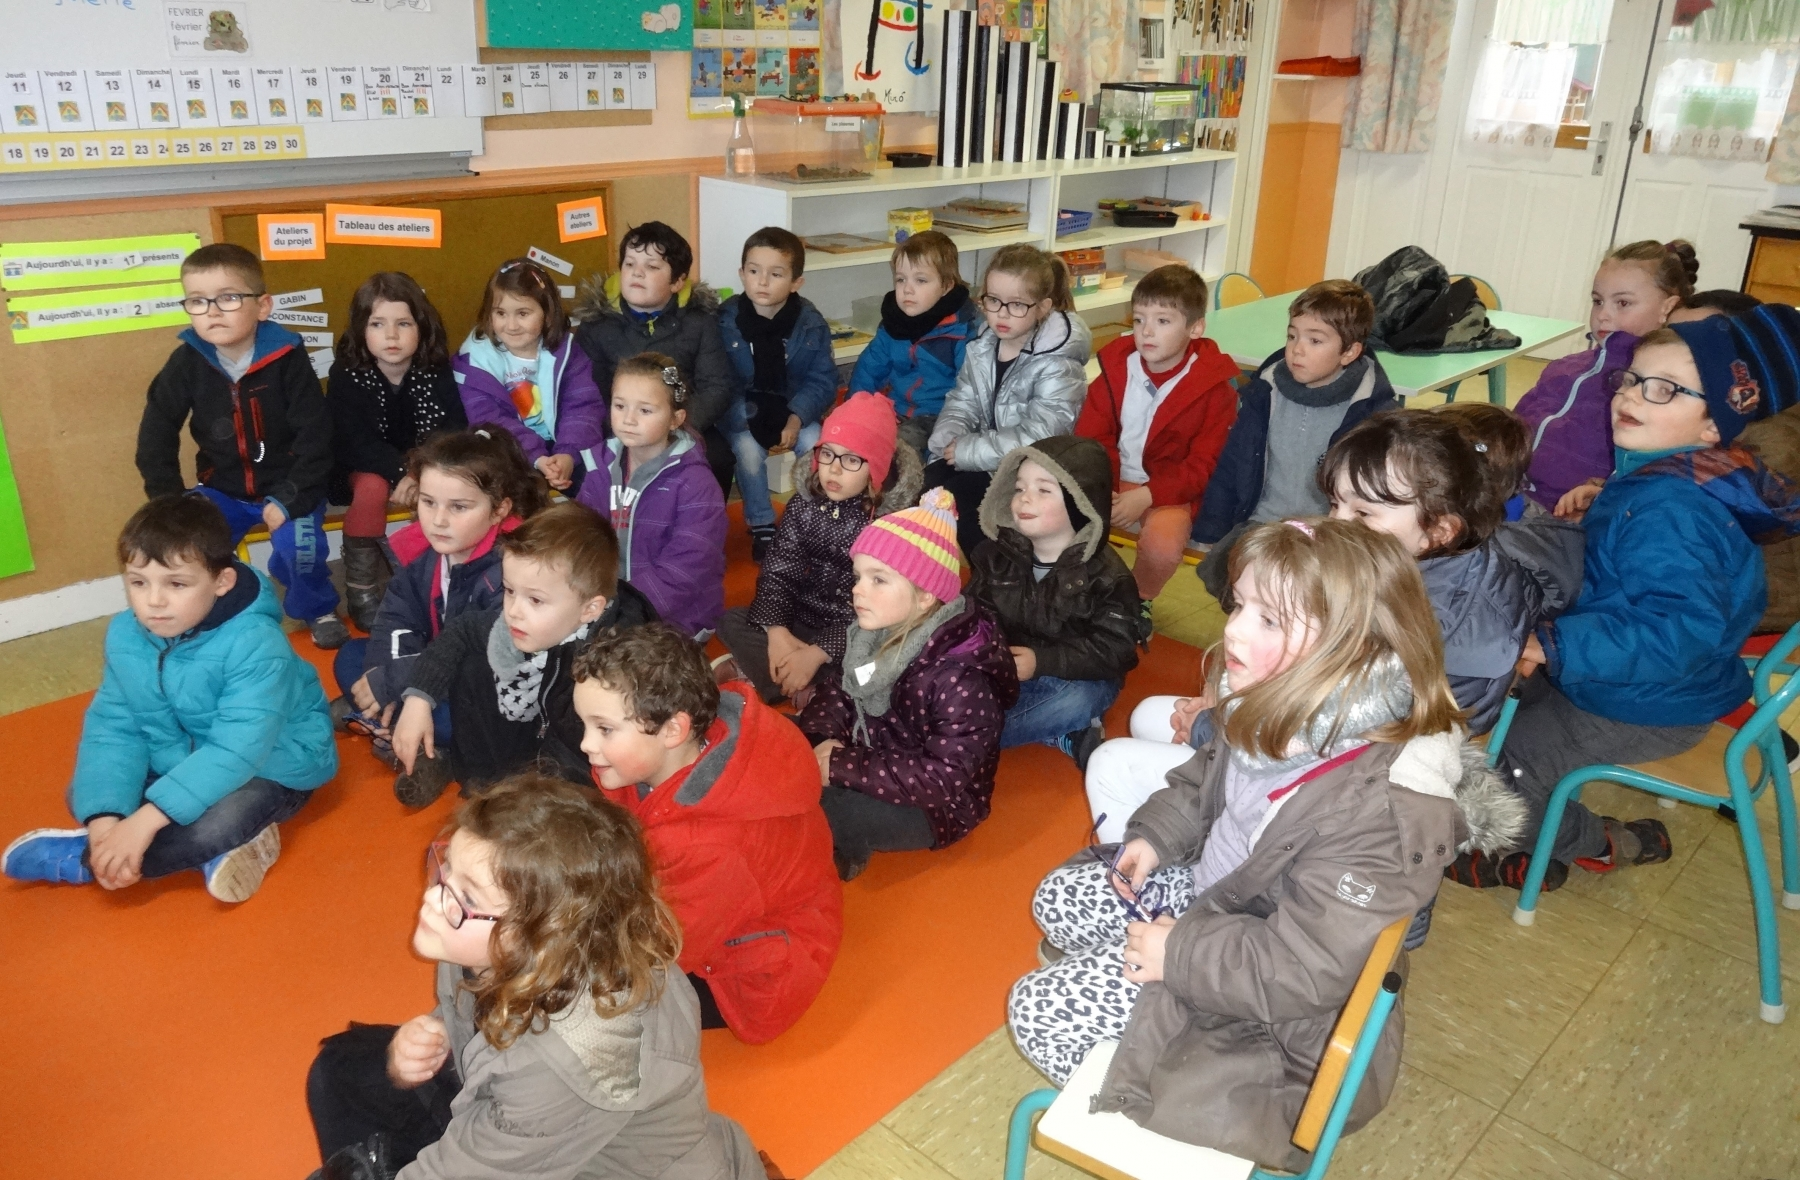 Les_classes_de_Corinne_et_Magali_à_la_poste.5